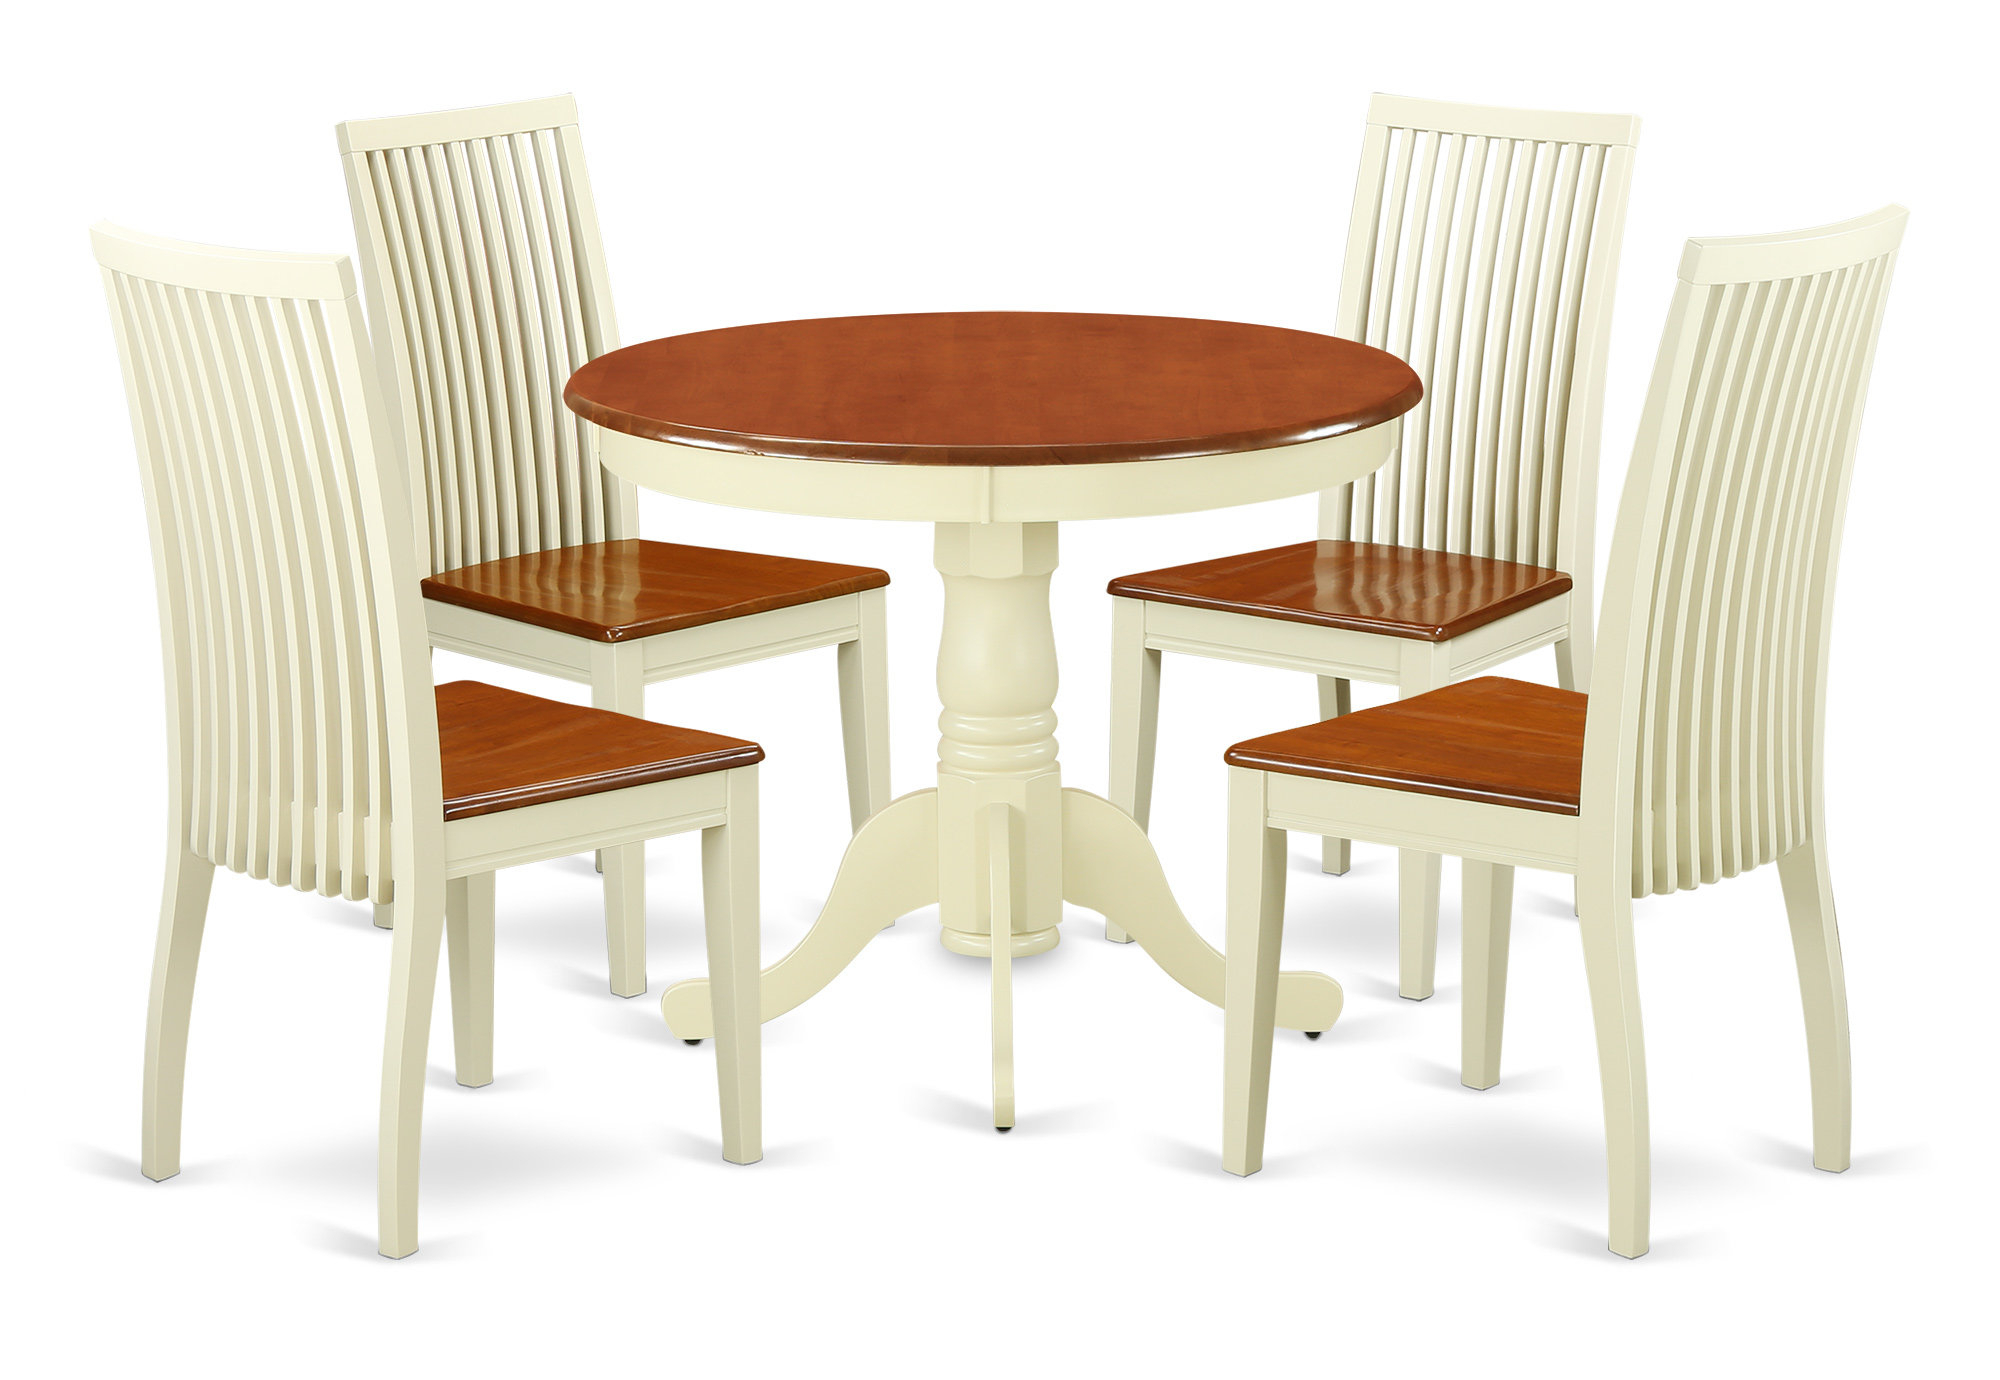 August Grove Brendan 5 Piece Breakfast Nook Solid Wood Dining Set With Trendy 5 Piece Breakfast Nook Dining Sets (View 6 of 25)